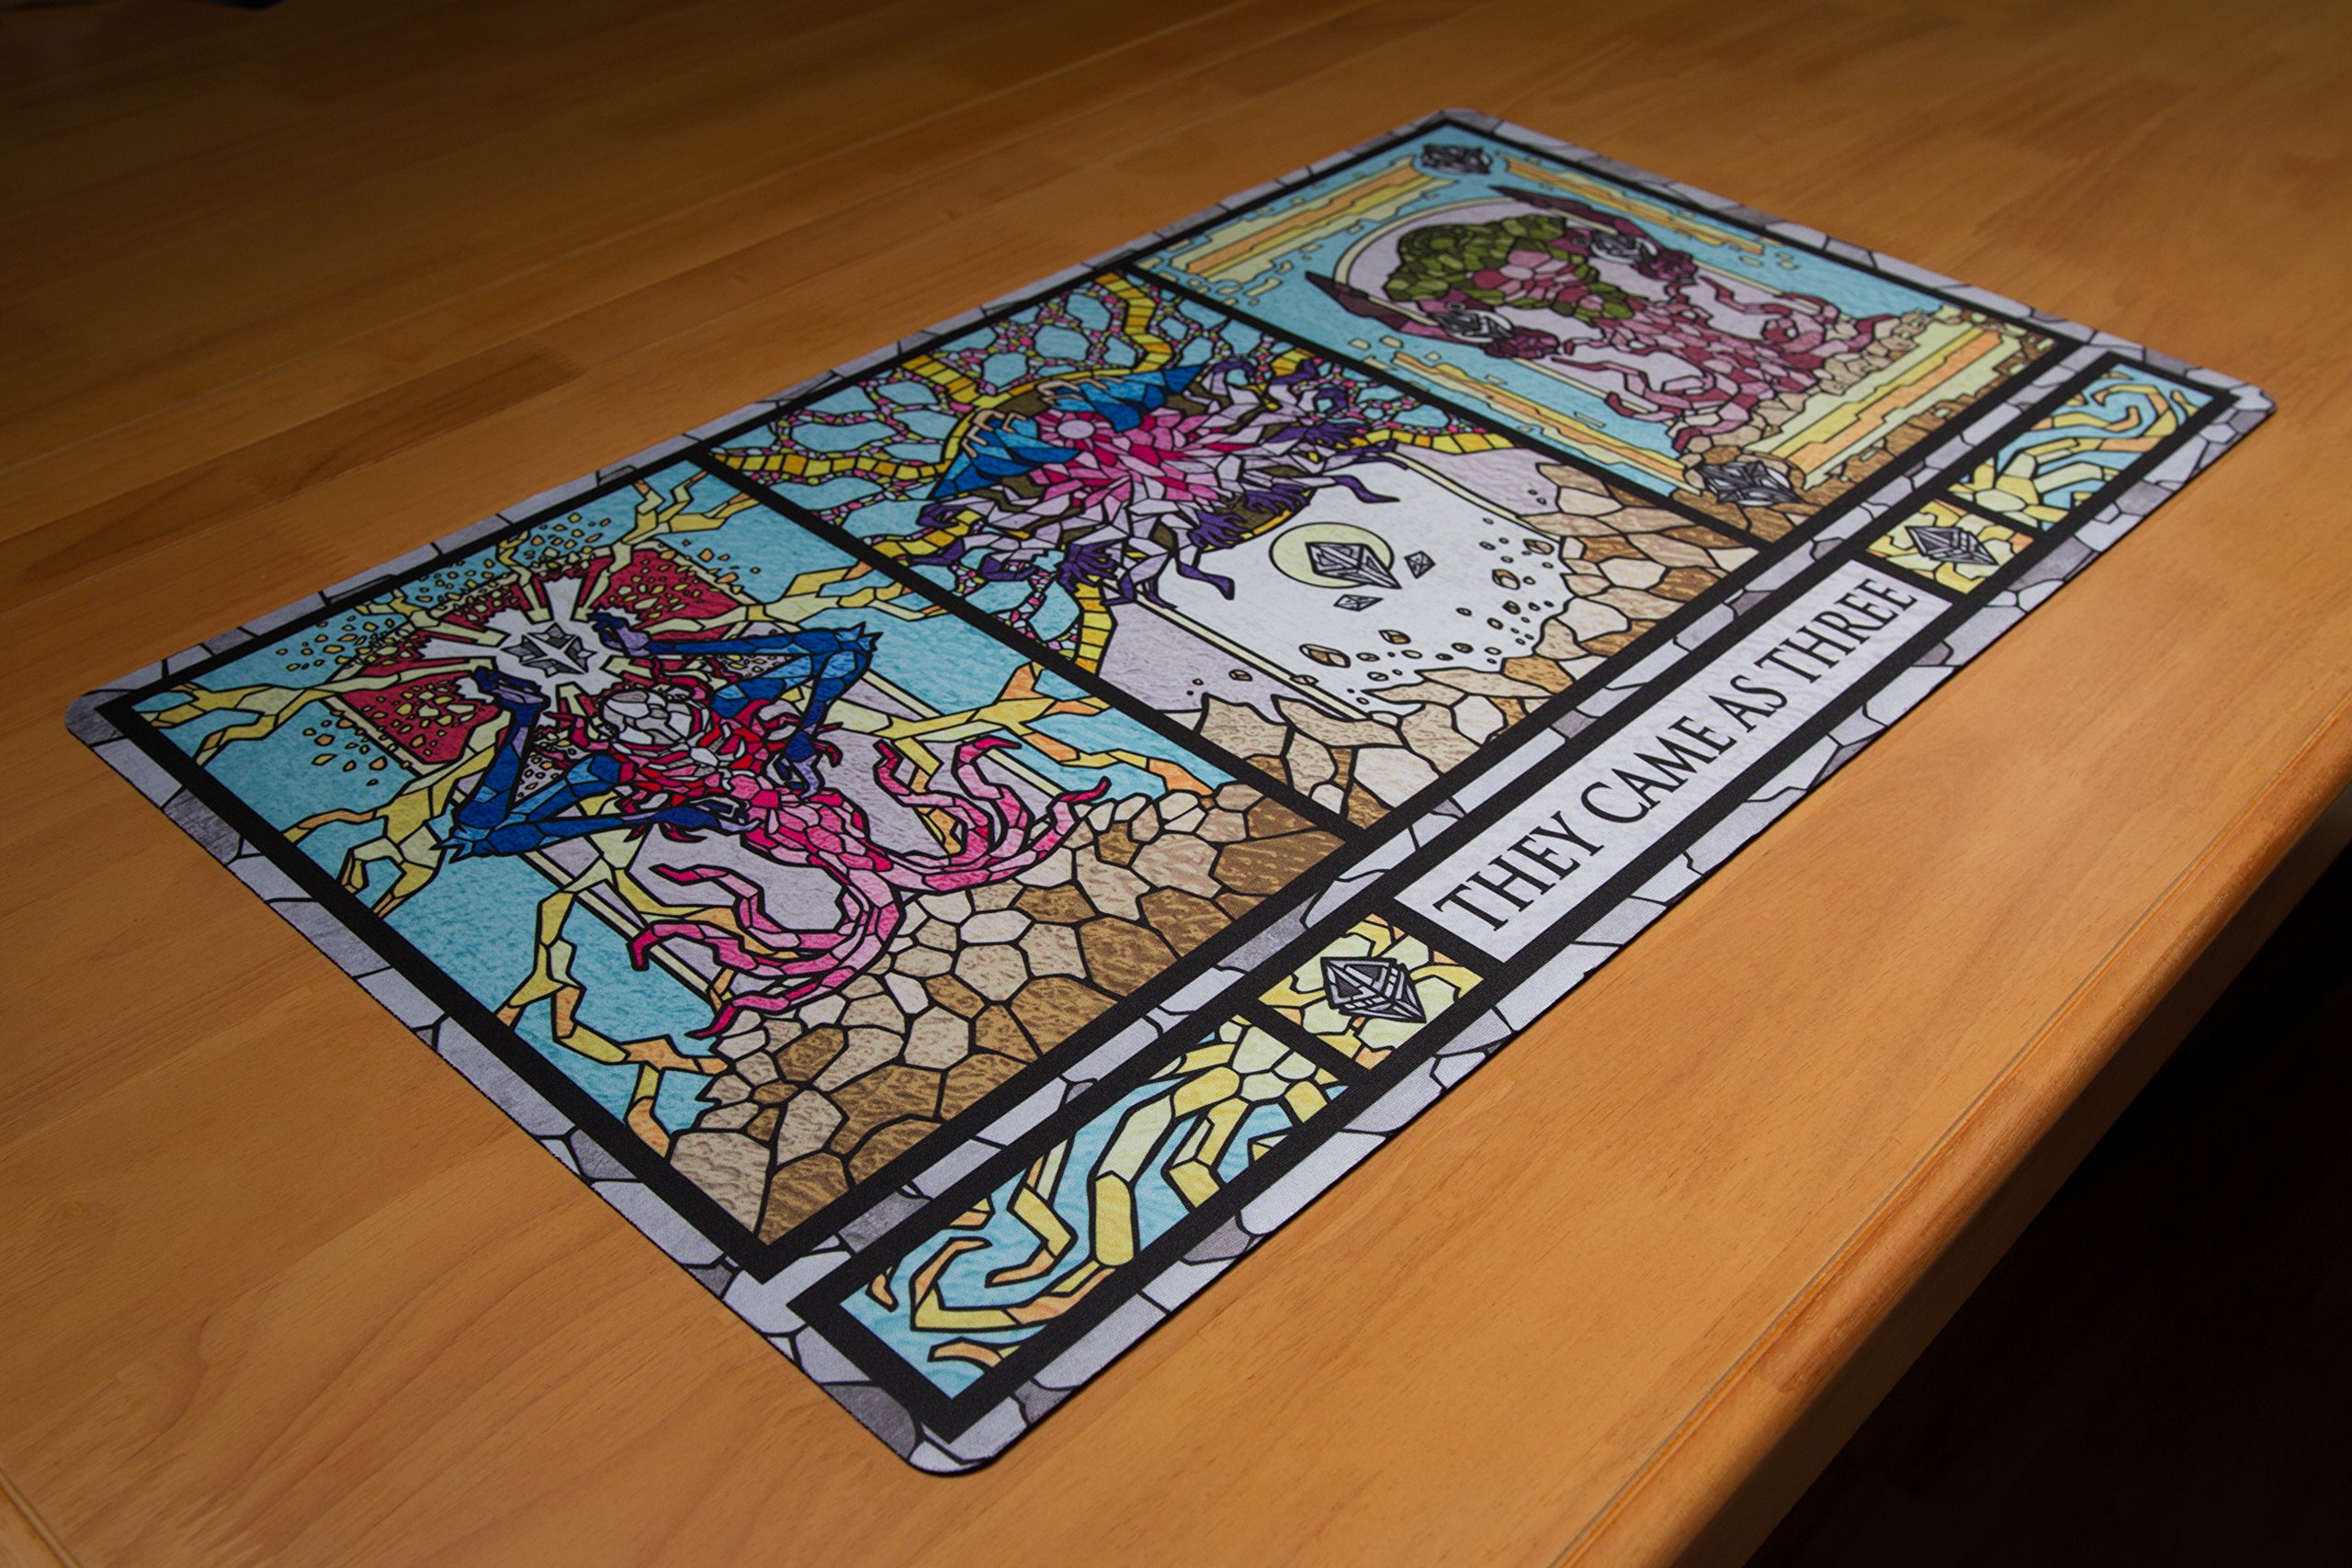 Inked Playmats Stained Glass Titans Card Playmat - Inked Gaming Perfect for Card Gaming TCG Game Mat by Inked Playmats (Image #6)